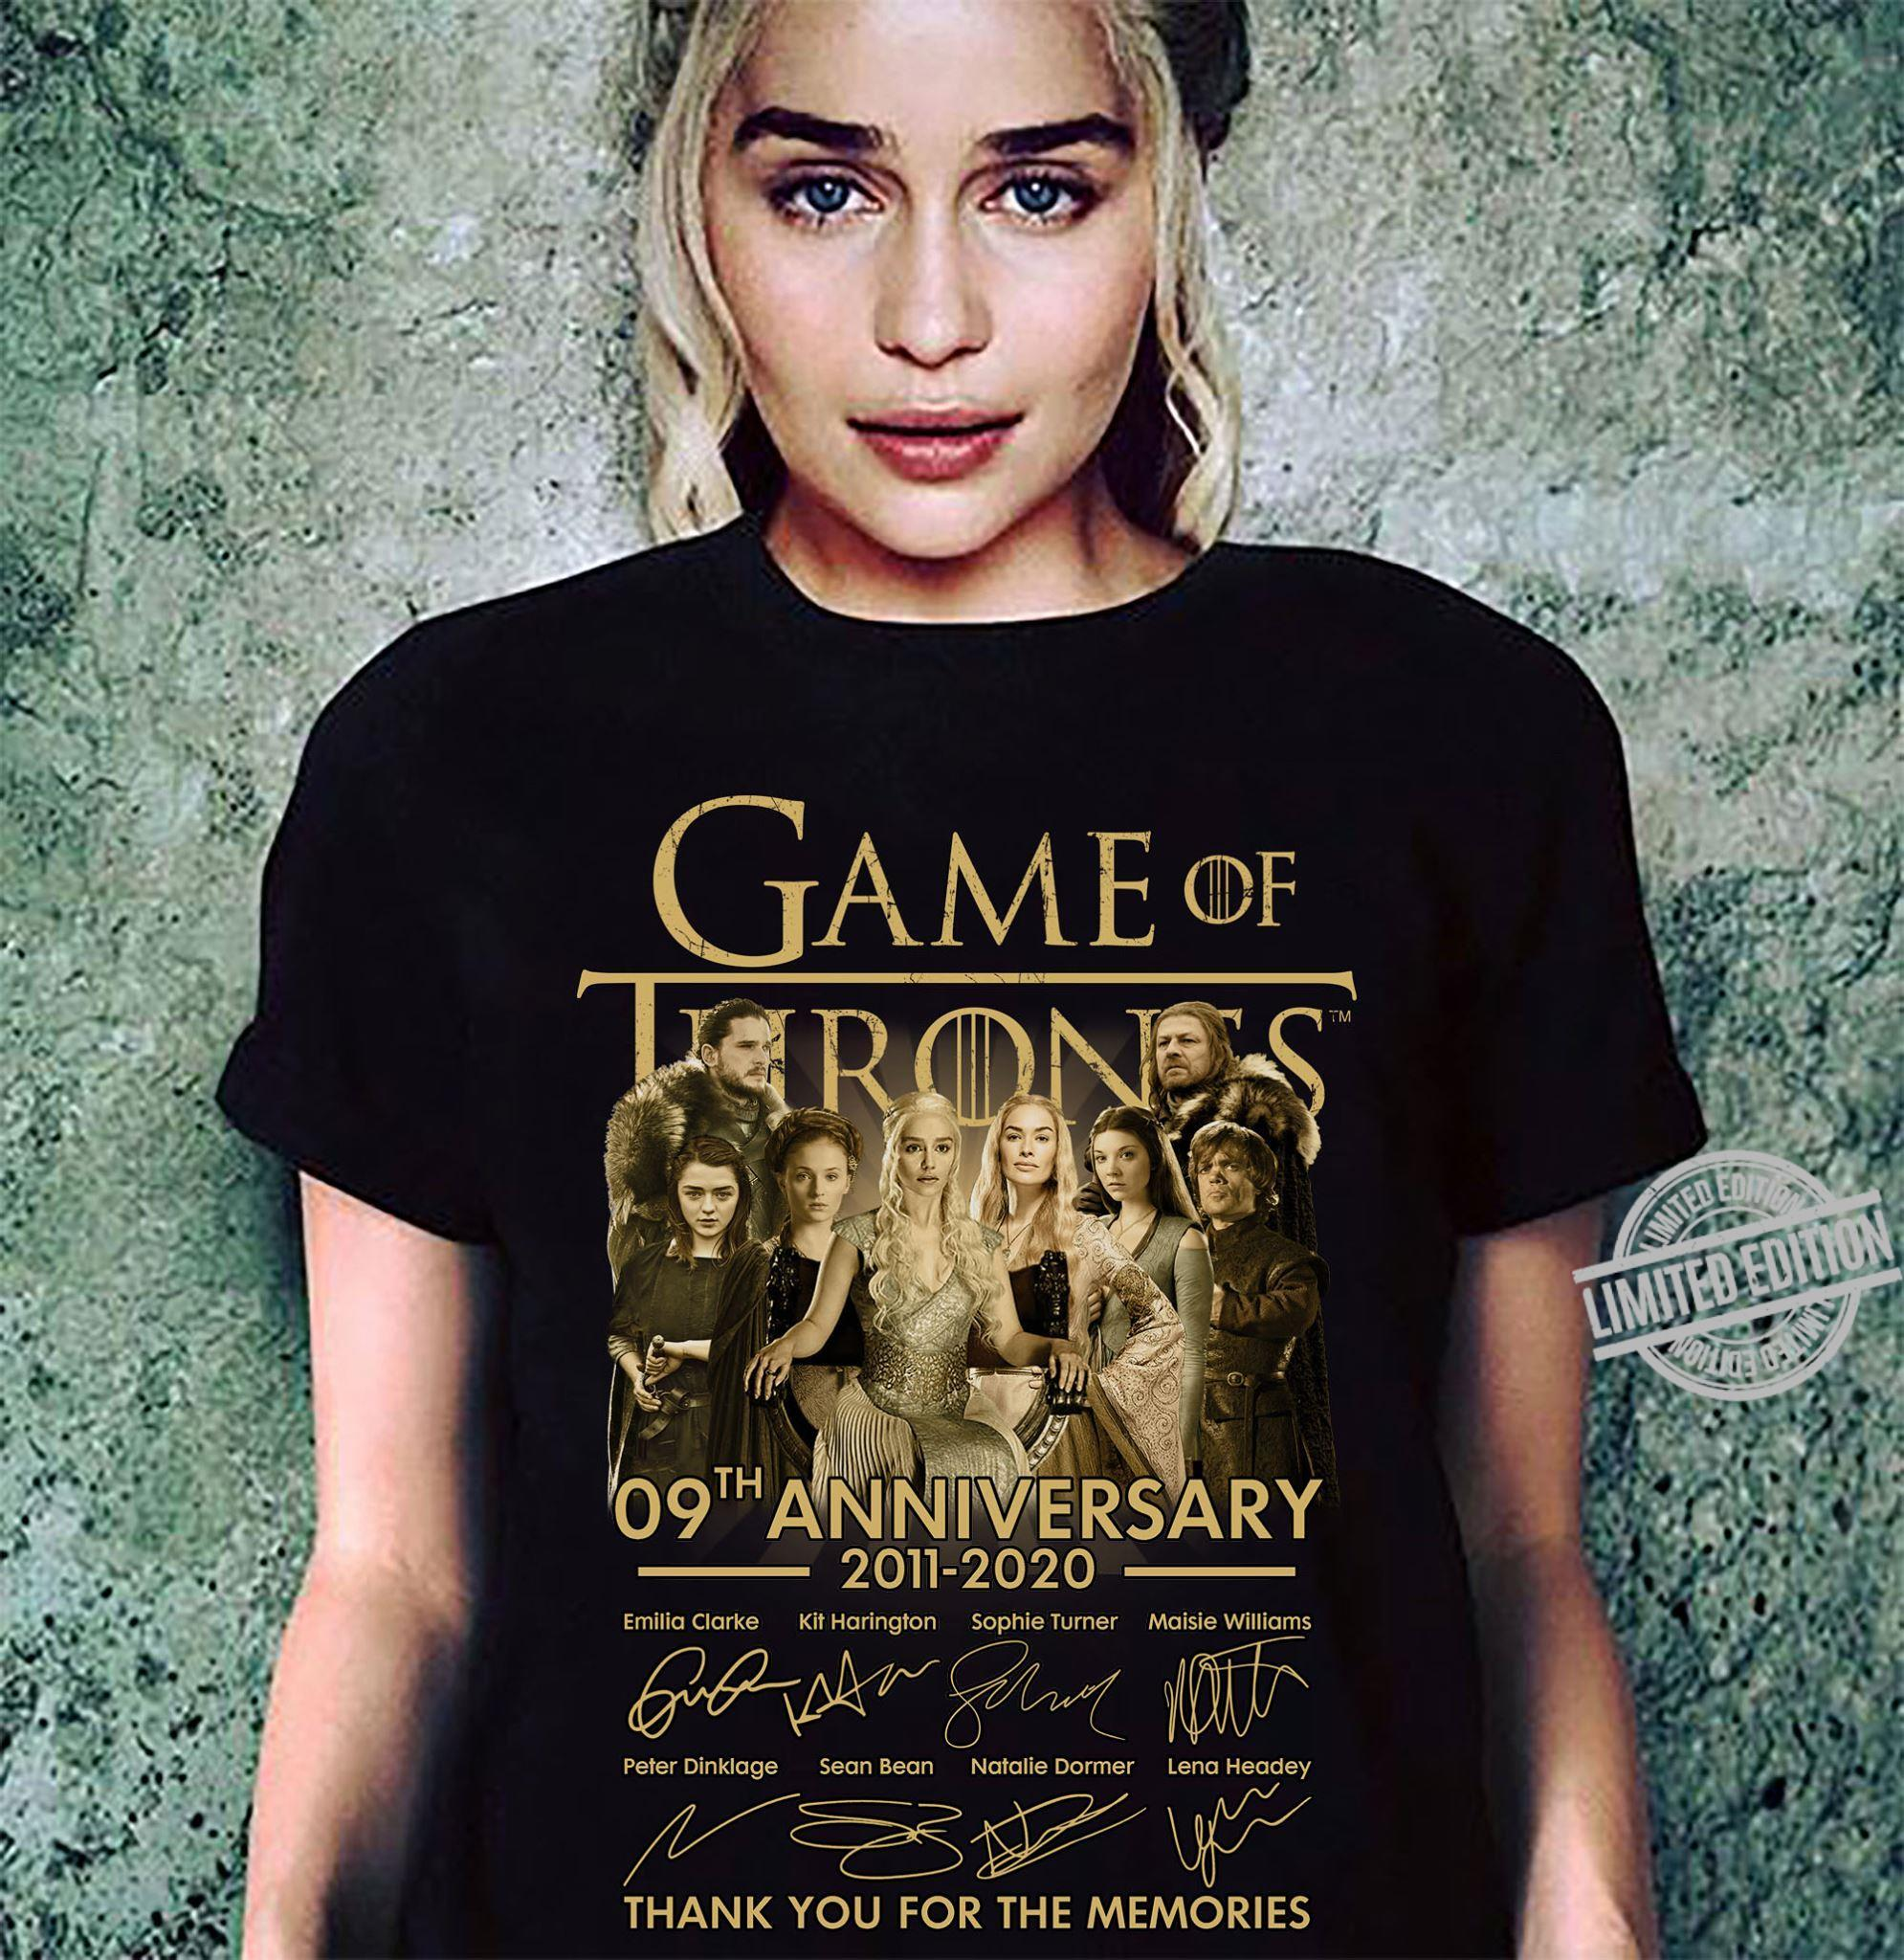 Game Of Thrones 09th Anniversary 2011 2020 Thank You For The Memories Shirt